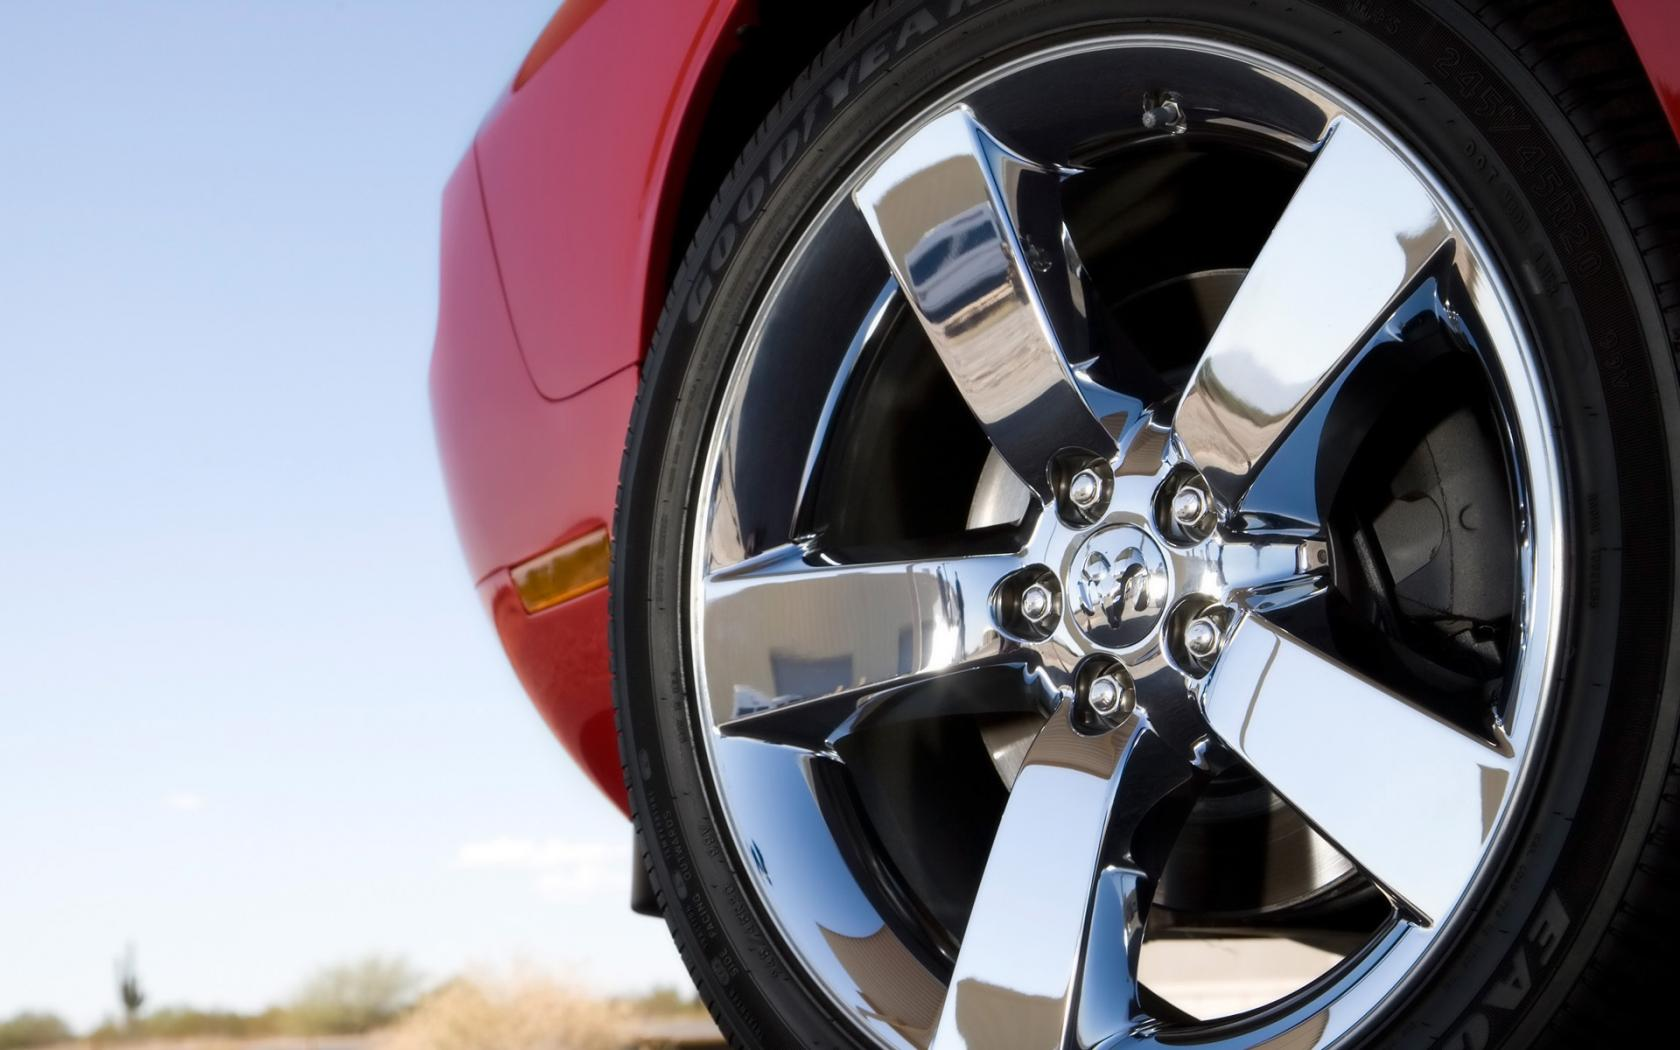 2009 Dodge Challenger Rt Wheel 1680x1050